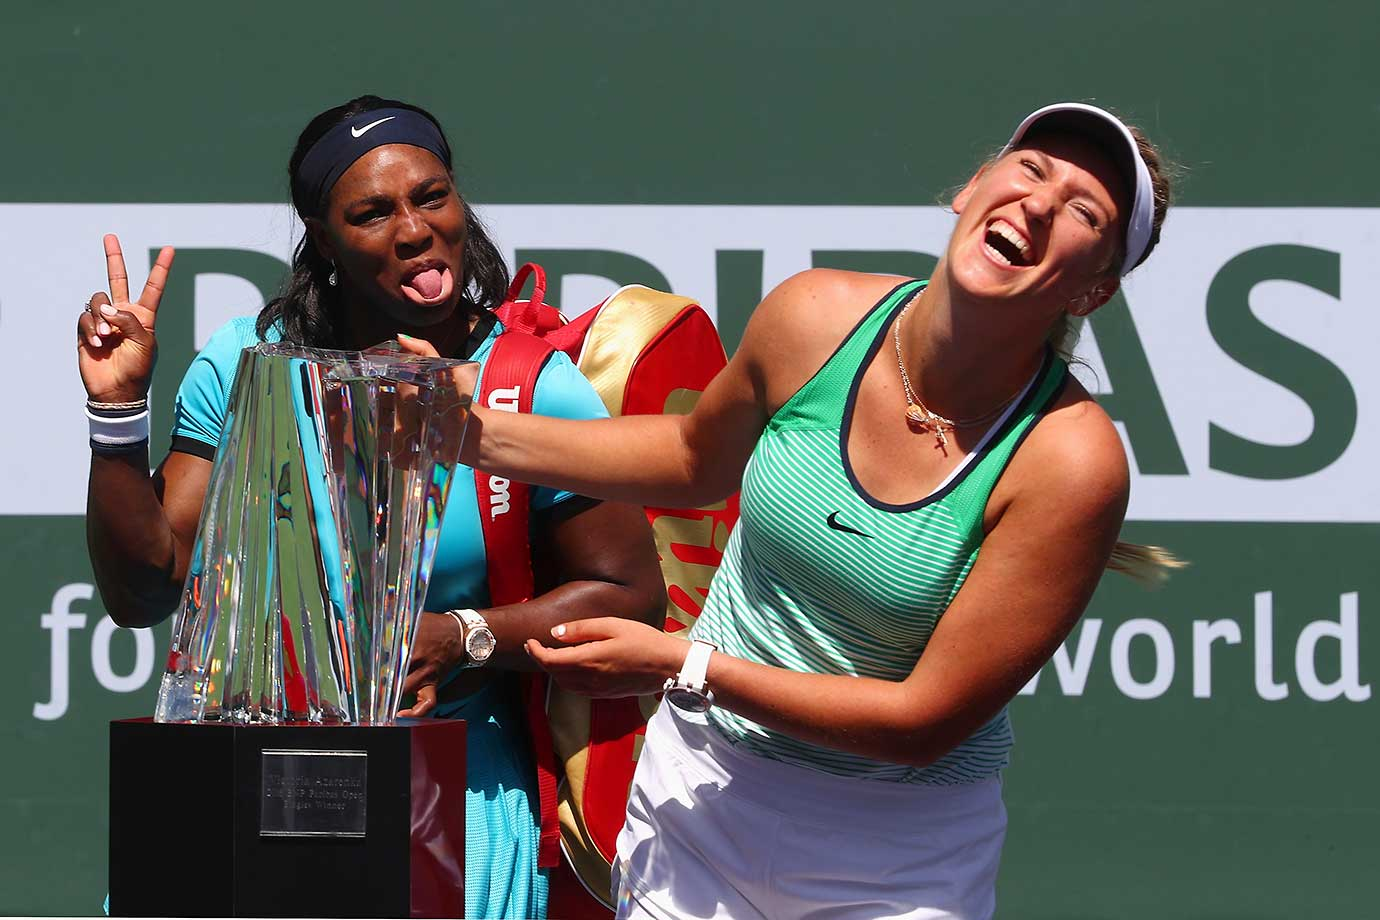 Victoria Azarenka of Belarus laughs with the winners trophy as Serena Williams pulls a face after the final in Indian Wells.